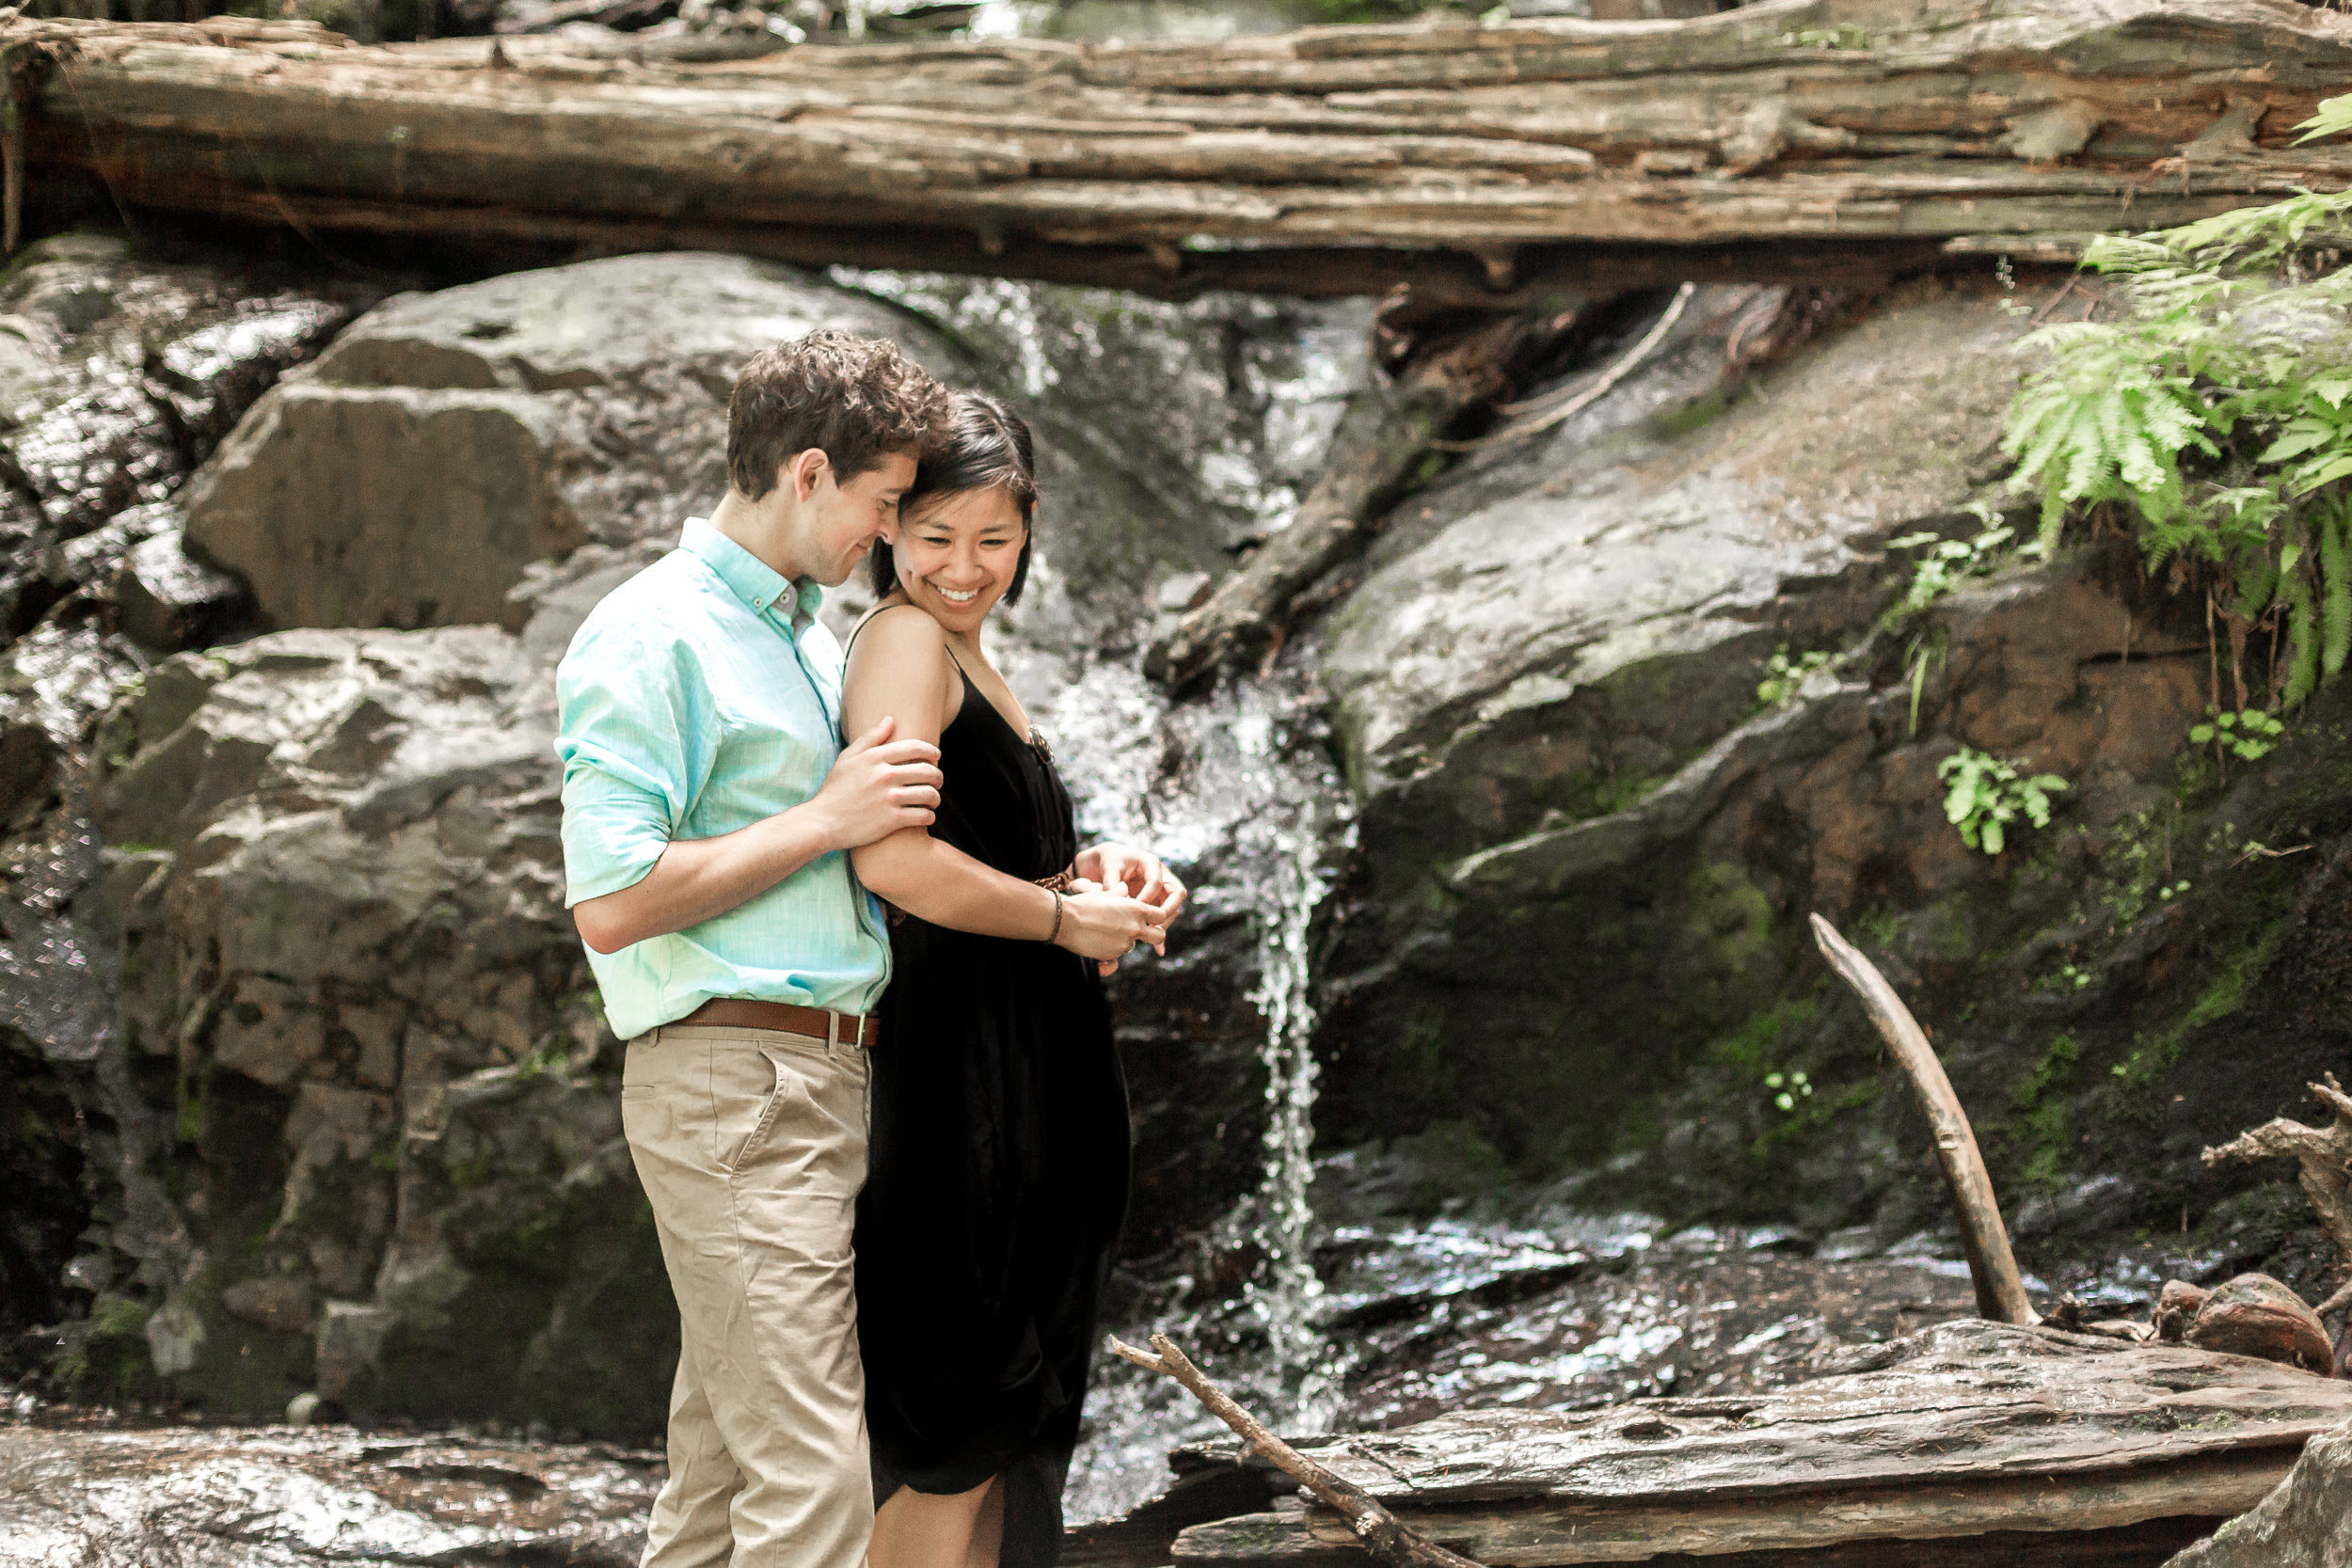 nicole-daacke-photography-hiking-engagement-session-in-snoqualmie-pass-washington-wedding-photographer-seattle-elopement-photography-adventurous-hiking-photos-heather-lake-washington-trails-31.jpg